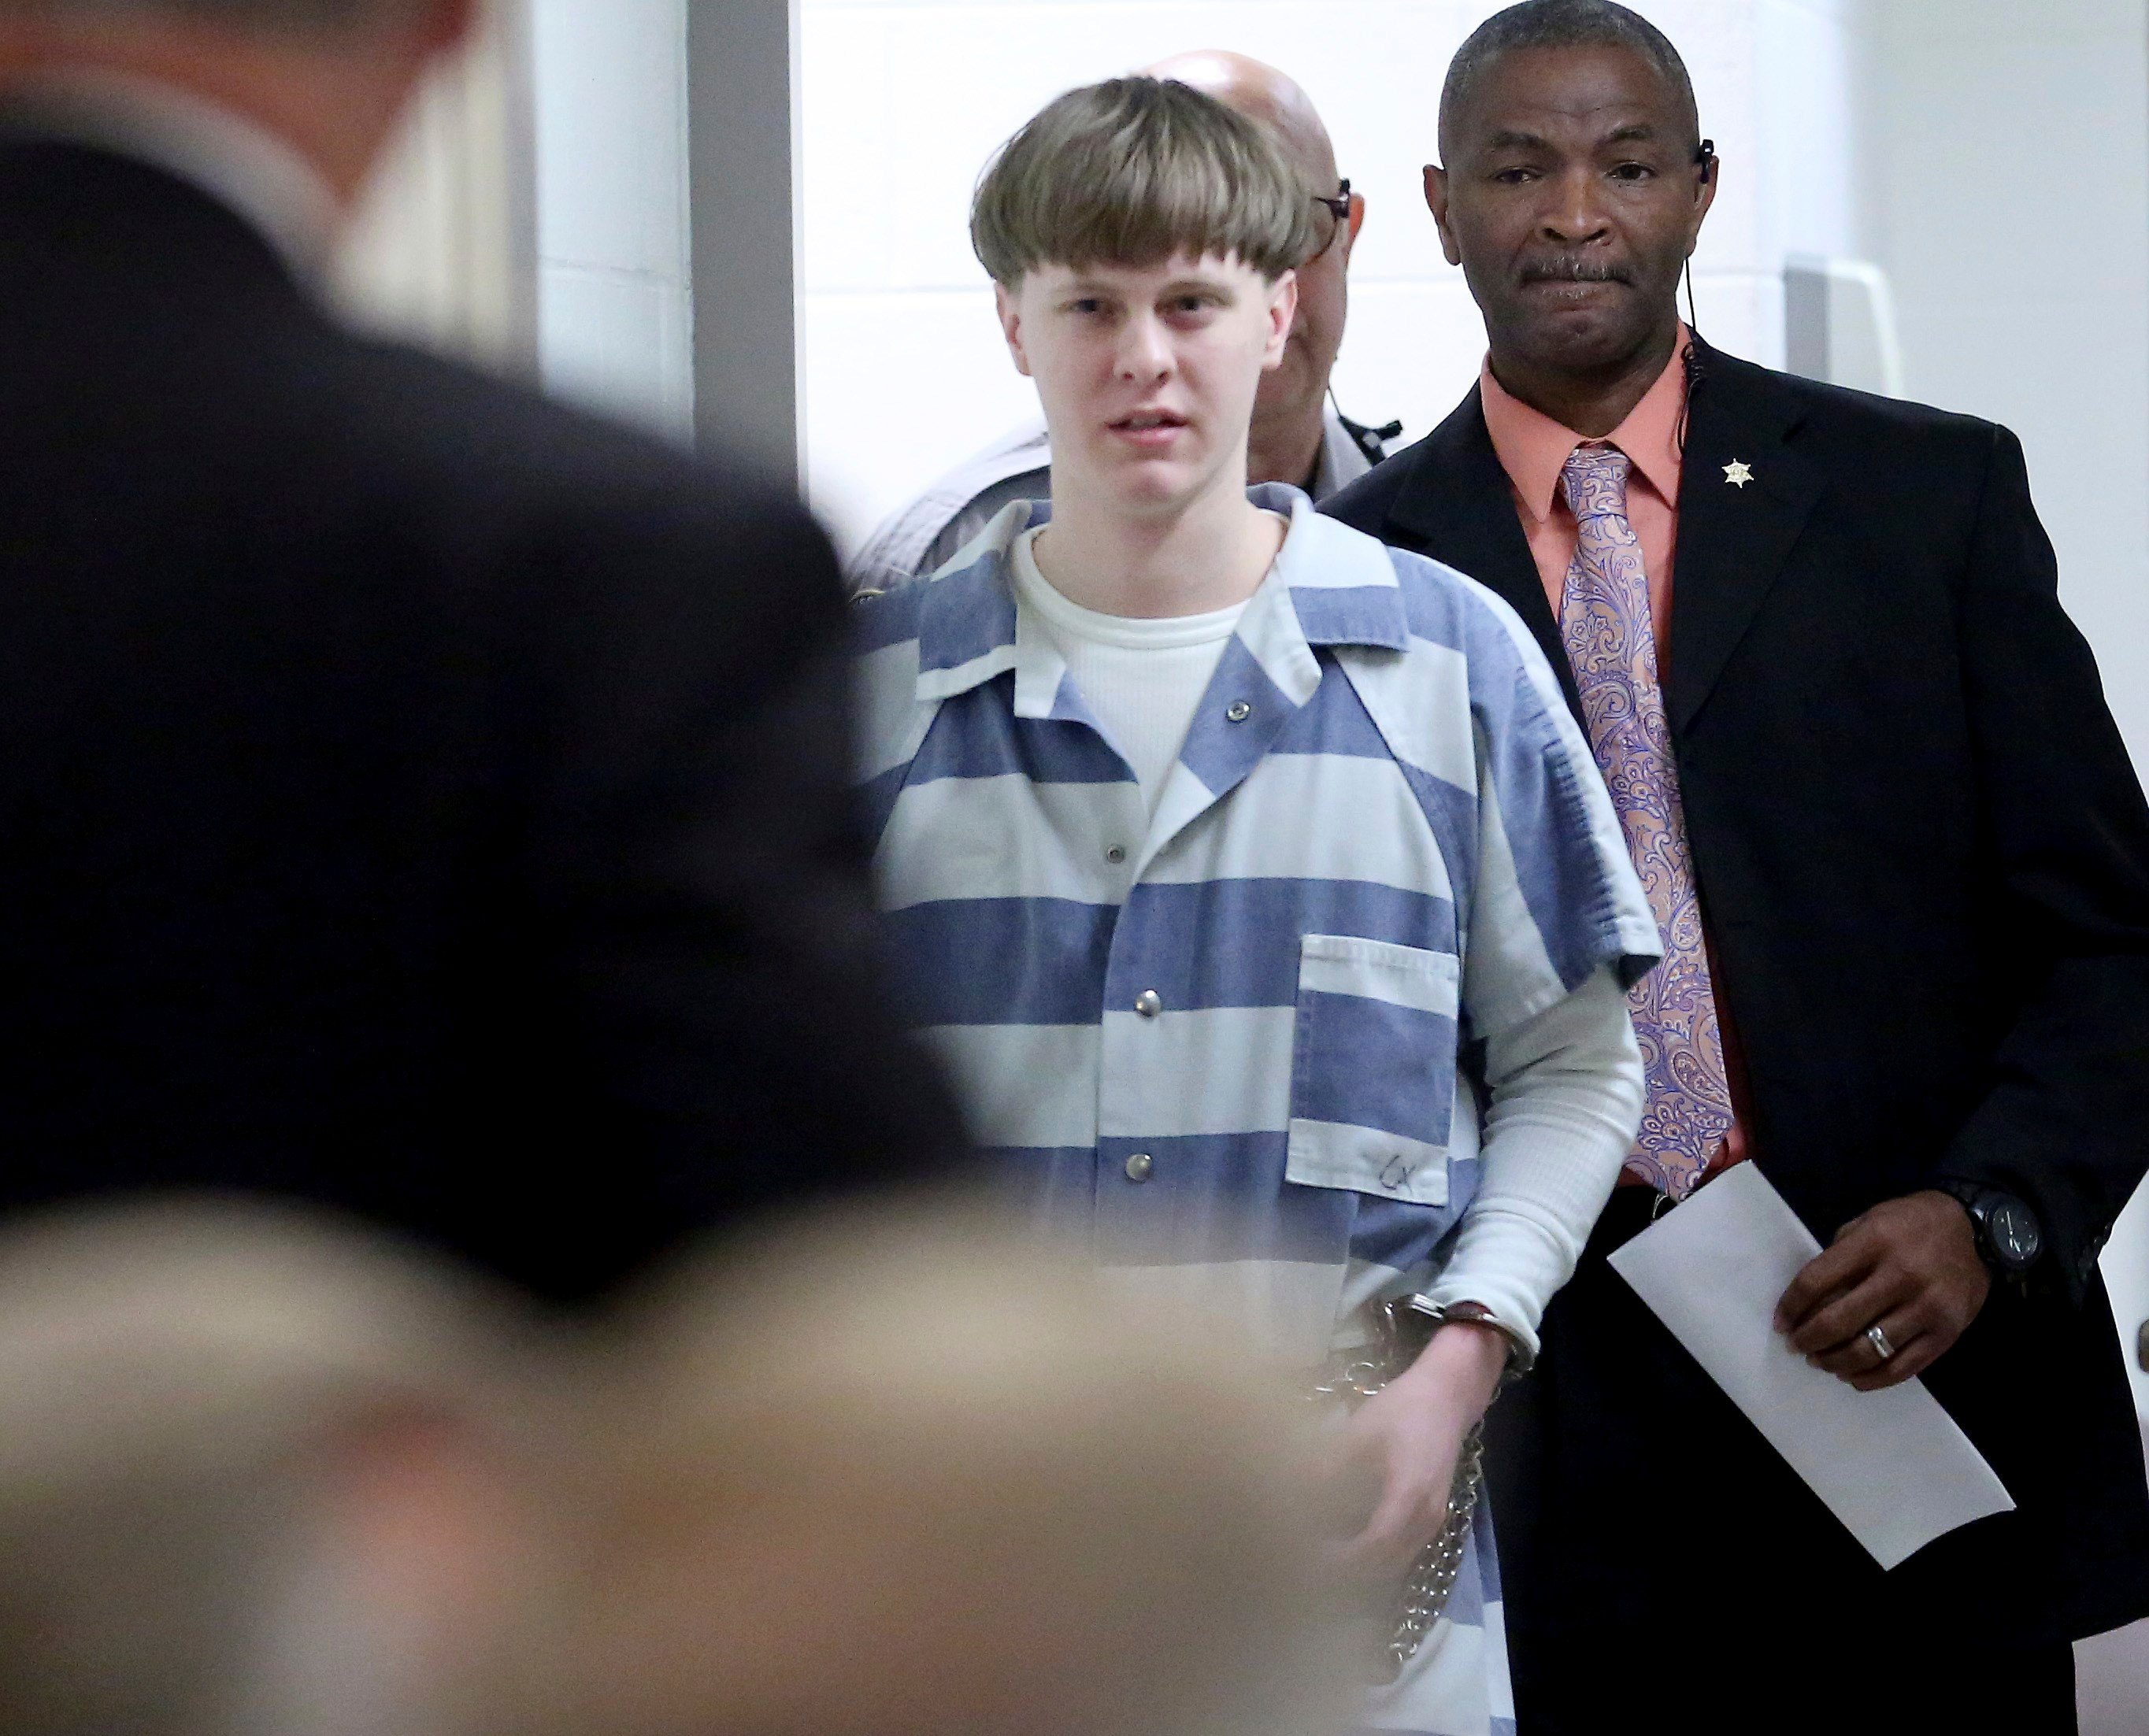 Dylann Roof enters the court room at the Charleston County Judicial Center Monday, April 10, 2017, to enter his guilty plea on murder charges in Charleston, S.C. (Grace Beahm/The Post And Courier via AP, Pool)